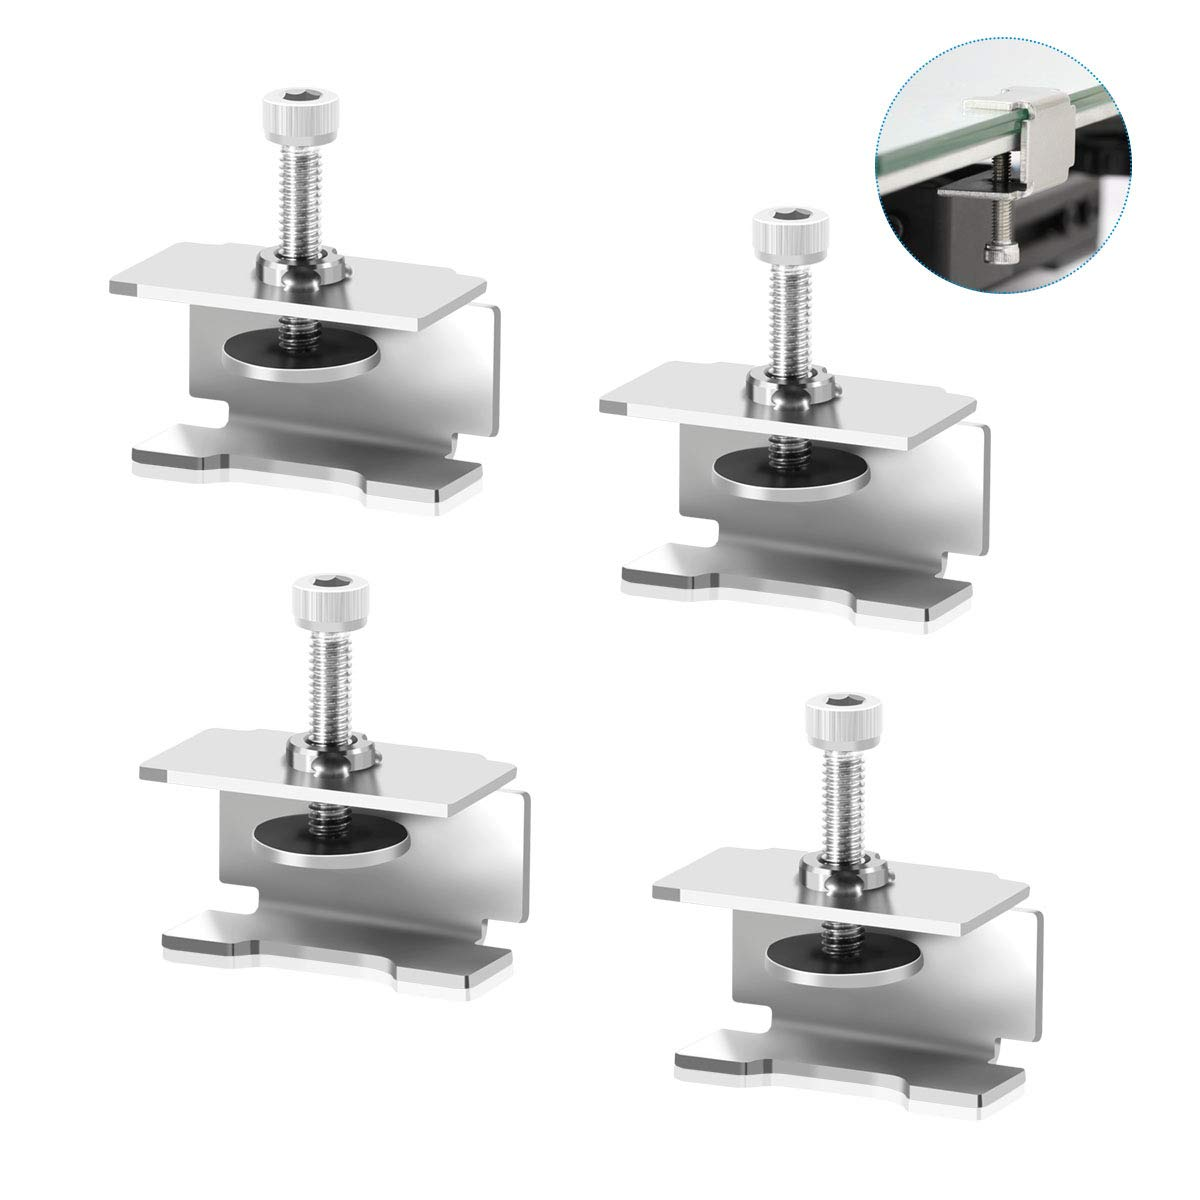 LANMU GLASS BED CLIPS CLAMPS COMPATIBLE ENDER 3   3 PRO   V2   3S ENDER 5   PRO CR-20 PRO CR-10S PRO ADJUSTABLE STAINLESS STEEL 3D PRINTER HEAT BED CLIPS(PACK OF 4)